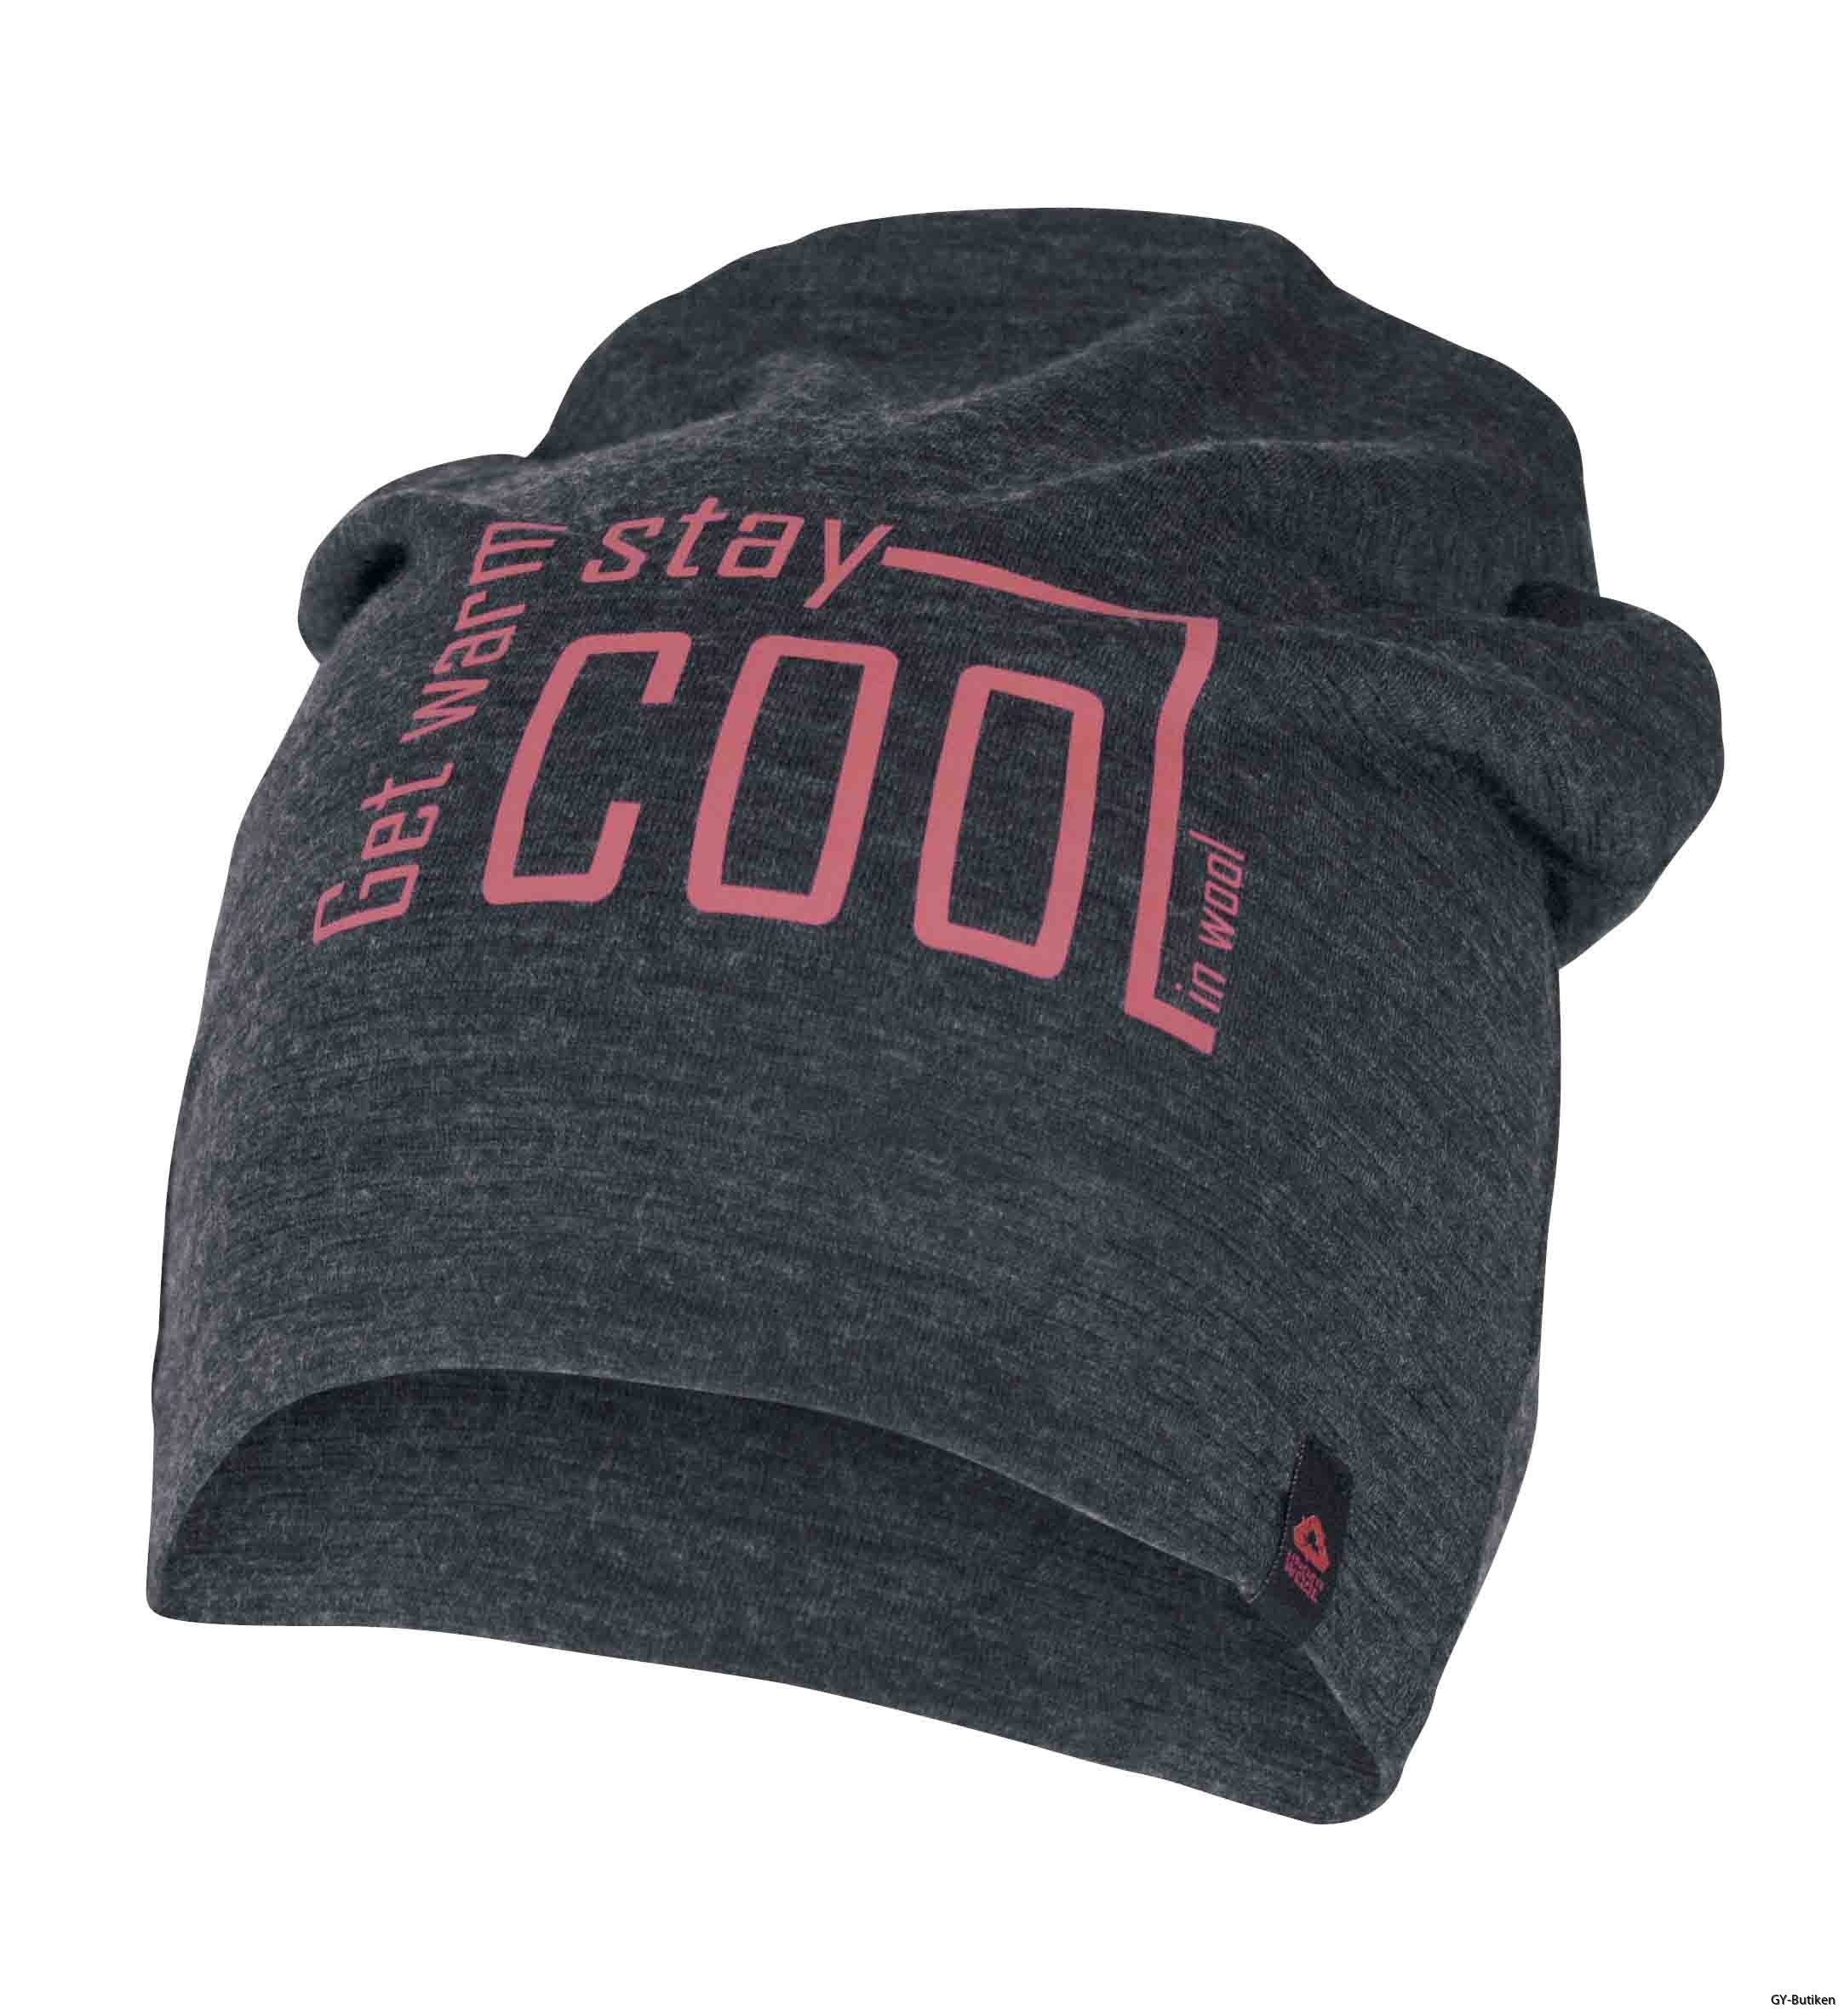 UW_Hat_Stay_Cool_55